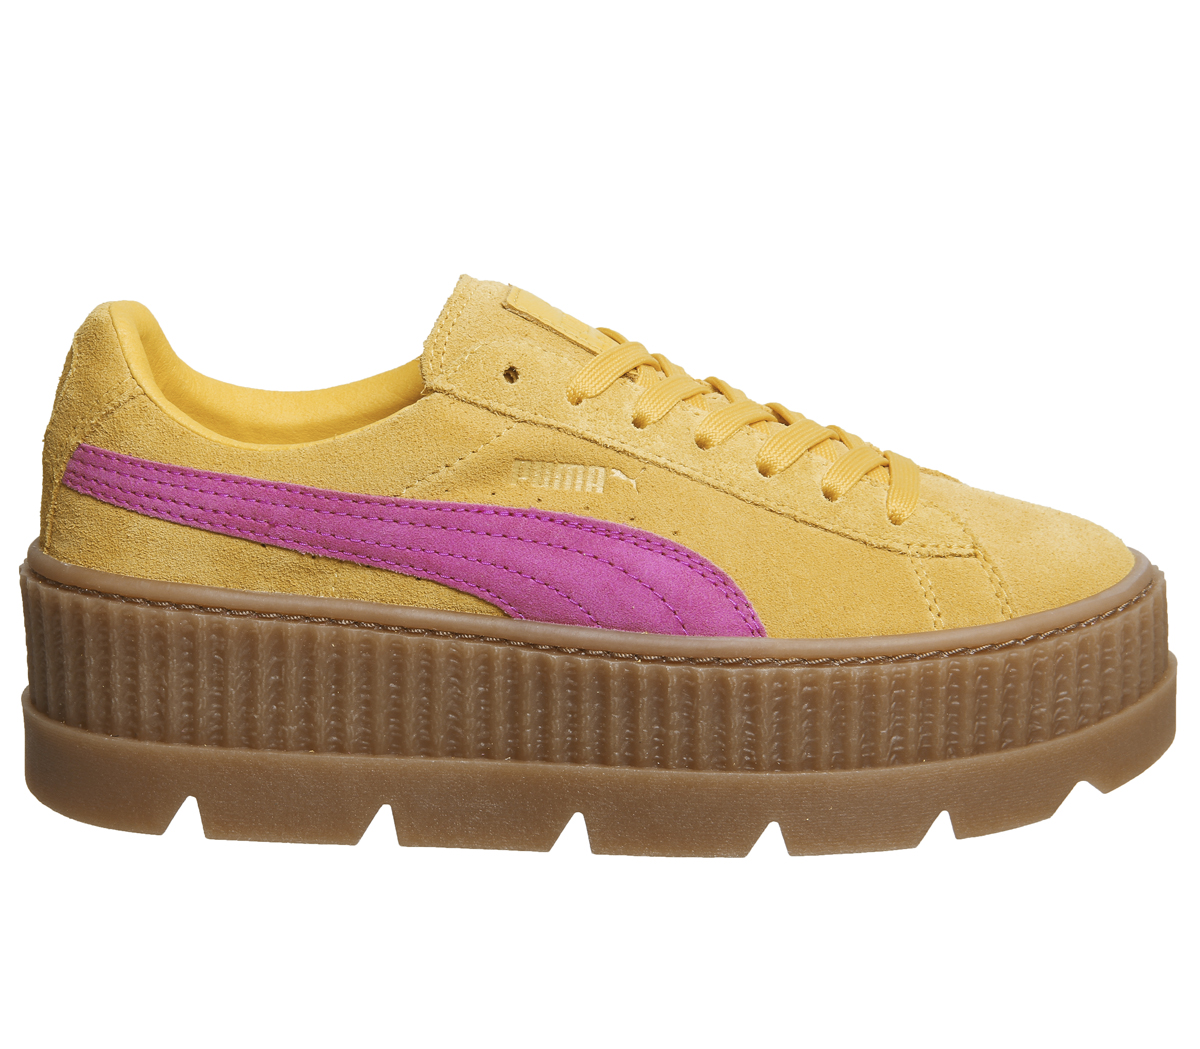 f1475b27a53 Sentinel Womens Puma Fenty Cleated Creepers LEMON CARMINE ROSE Trainers  Shoes